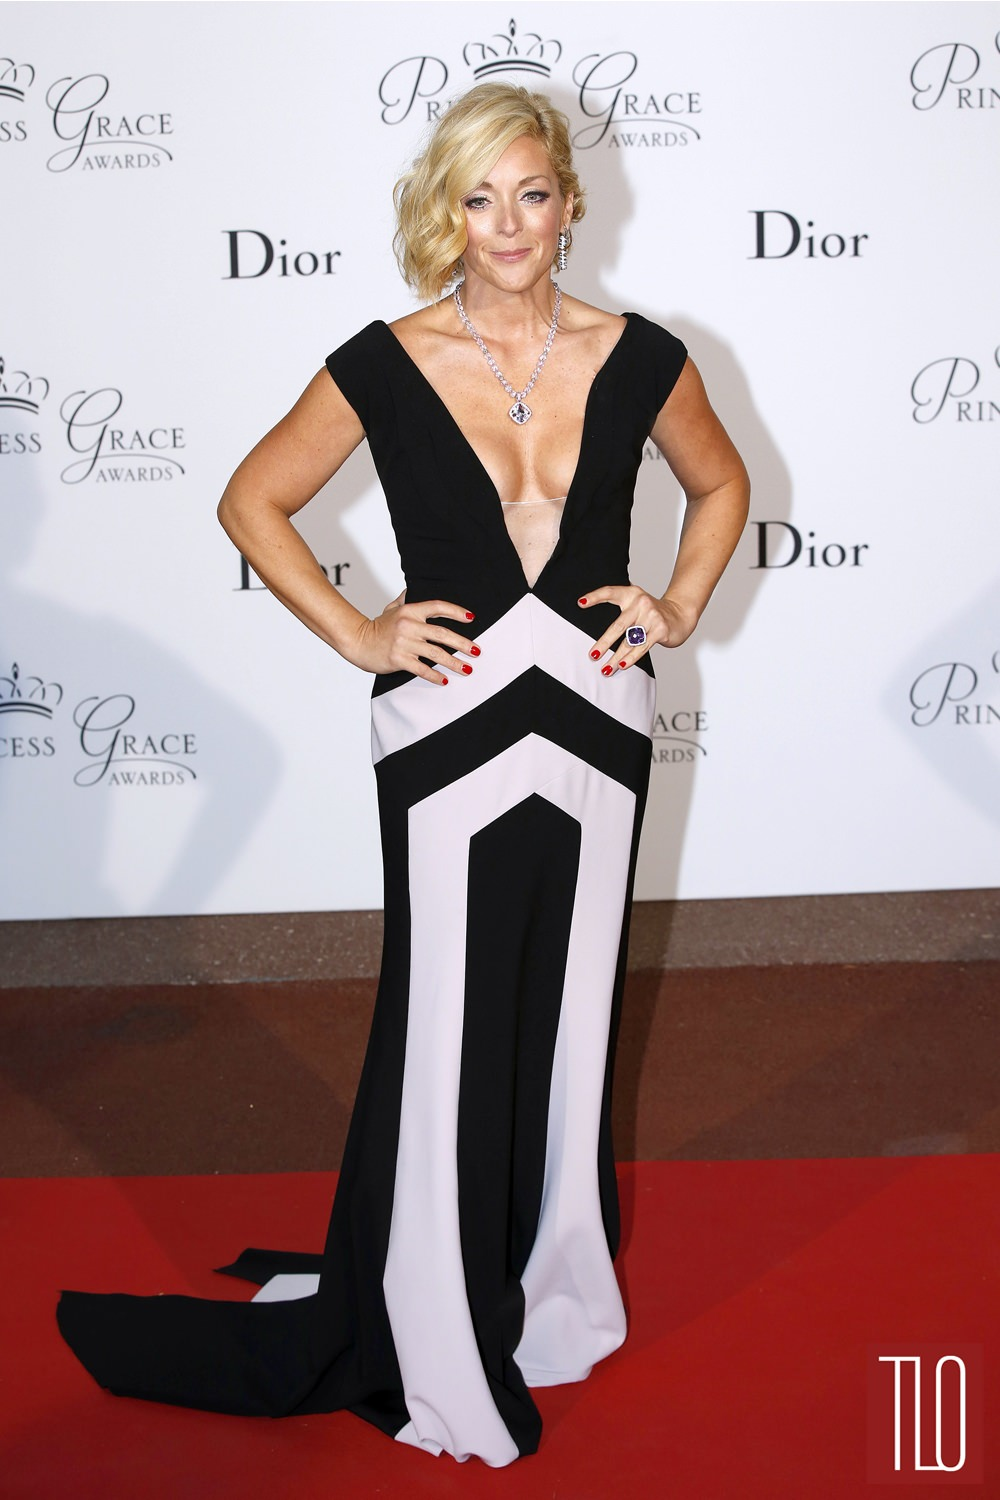 Jane-Krakowski-2015-Princess-Grace-Awards-Gala-Red-Carpet-Fashion-Bibhu-Mohapatra-Tom-Lorenzo-Site-TLO-1.jpg